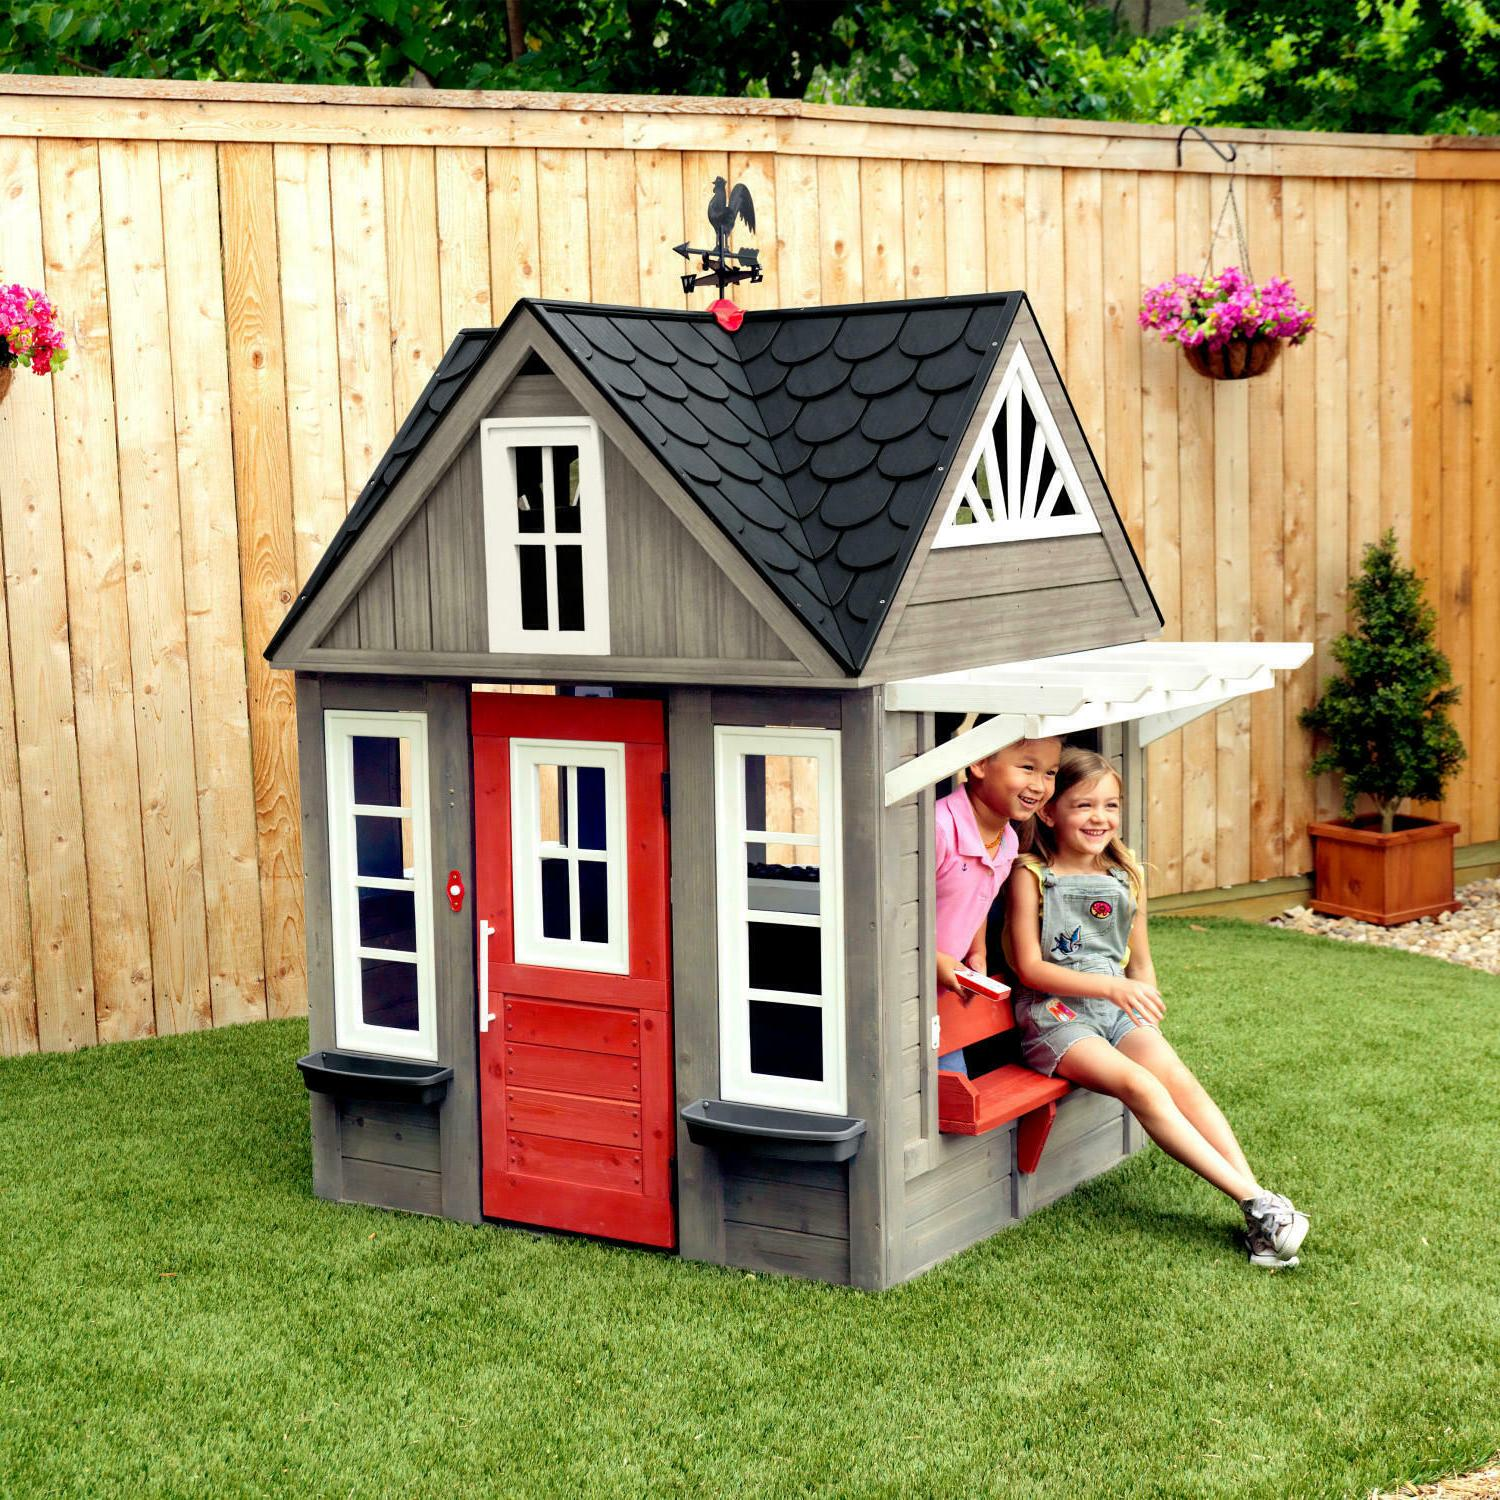 stonewood outdoor playhouse